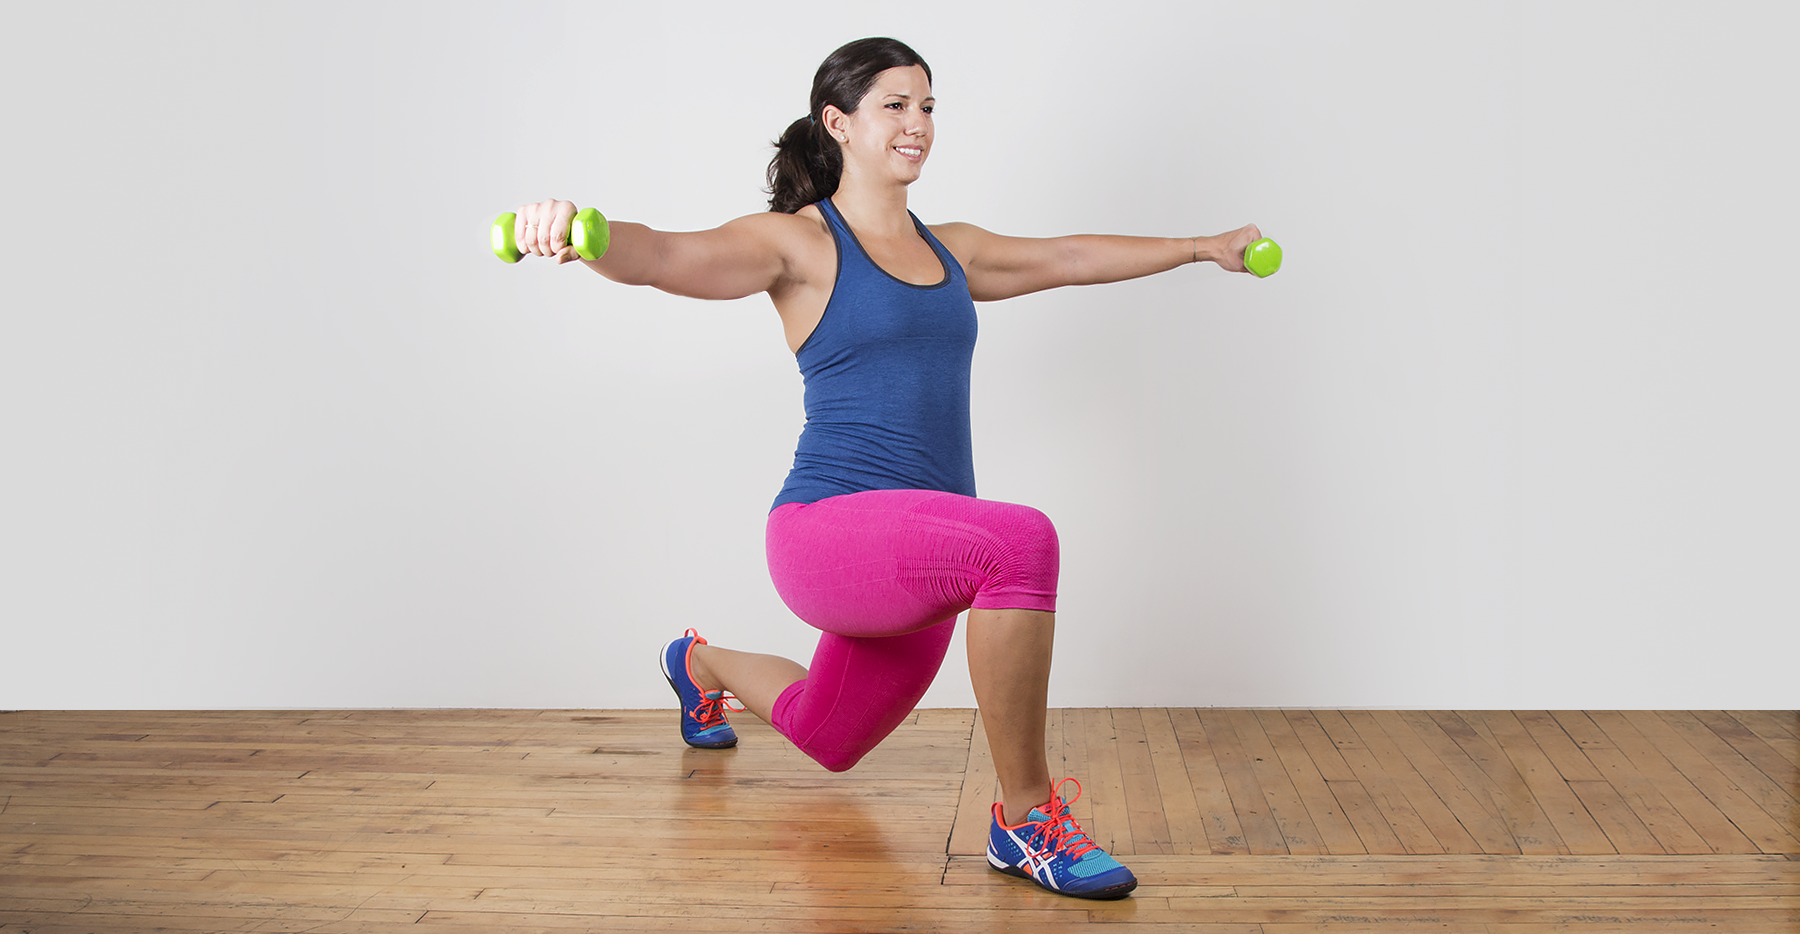 10 Workouts For Sculpted Arms And Shoulders A Power Playlist 32 Lunge Variations To Keep Things Interesting Seriously Intense Greatist